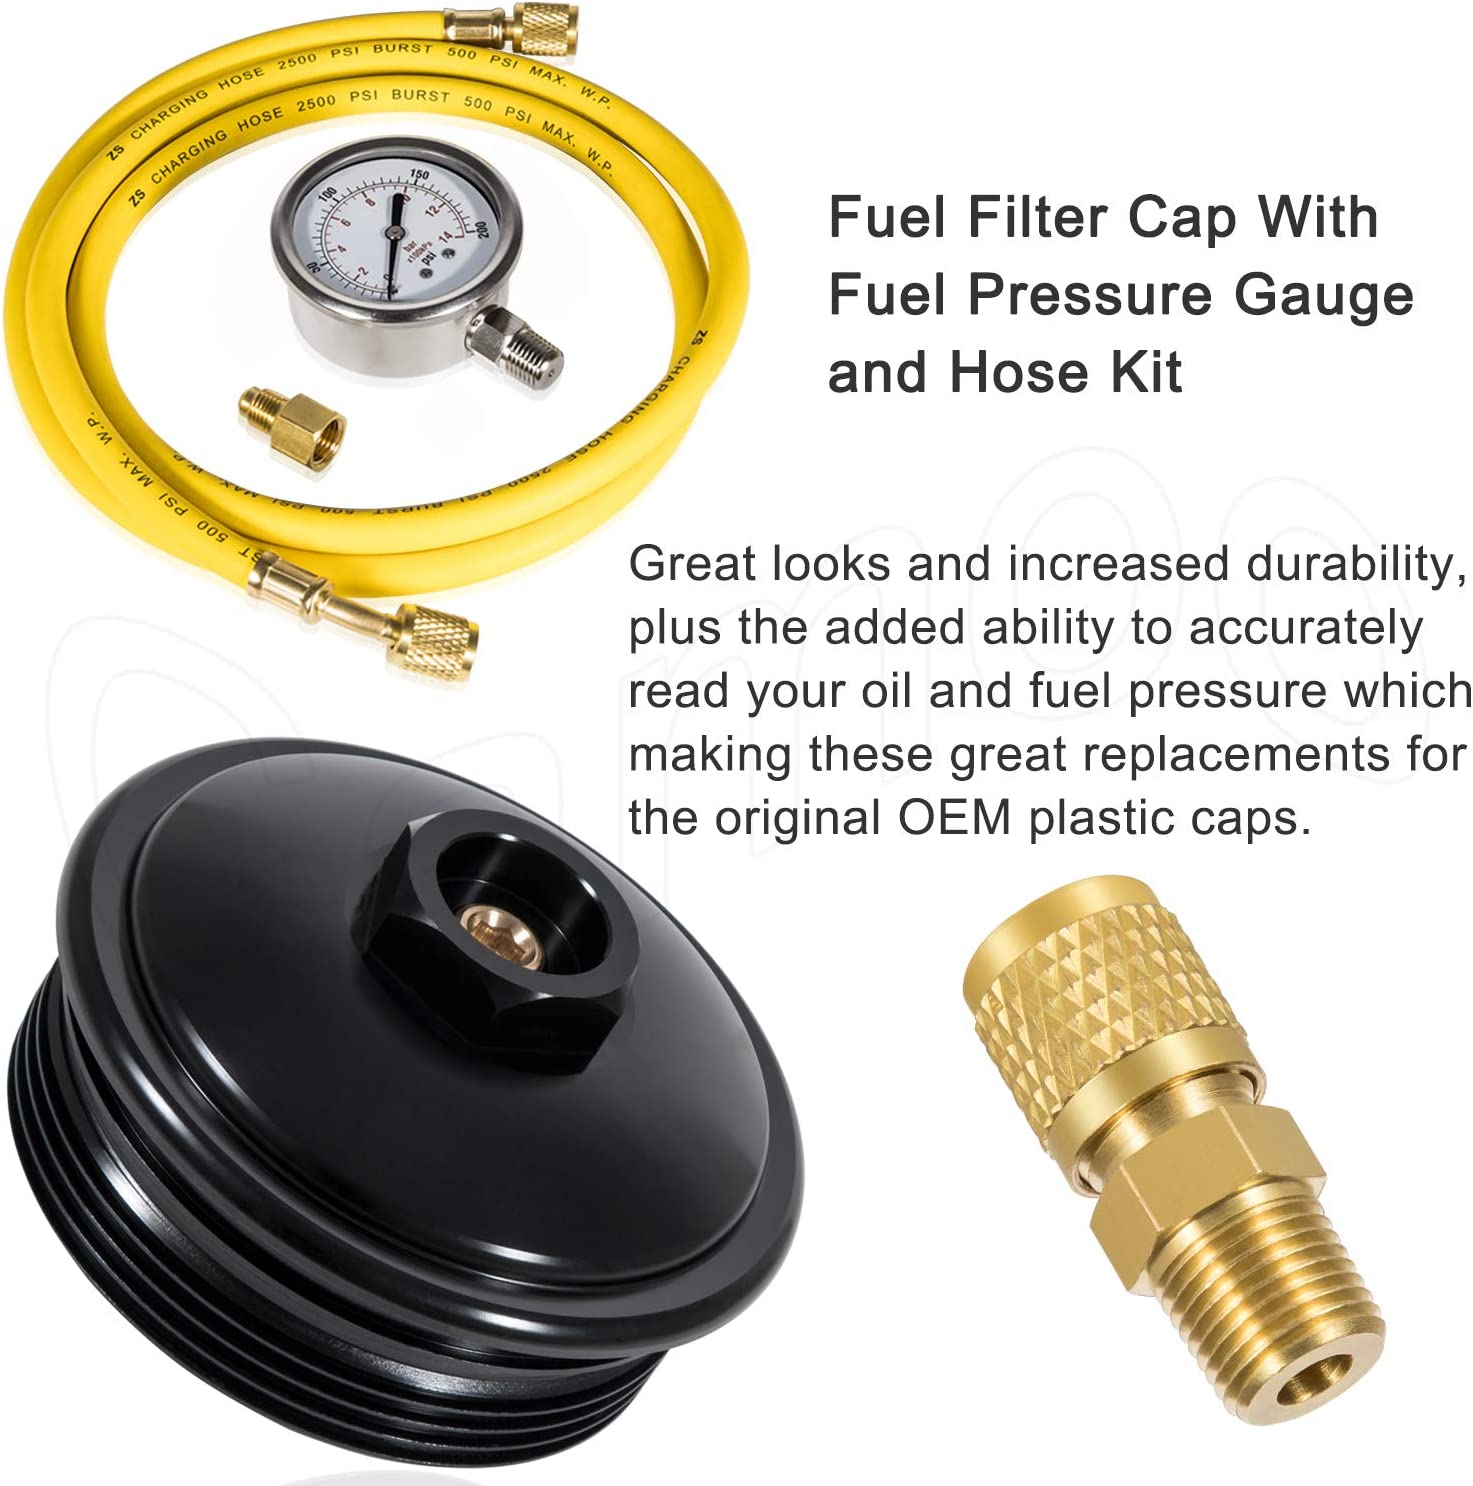 Fuel Filter Cap with Fuel Pressure Gauge and Hose Kit for 2003-2007 Ford Power Stroke Diesel 6.0L F250,F350,F450,F550,F650,F750,Excursion Camoo Billet Aluminum Oil Filter Cap